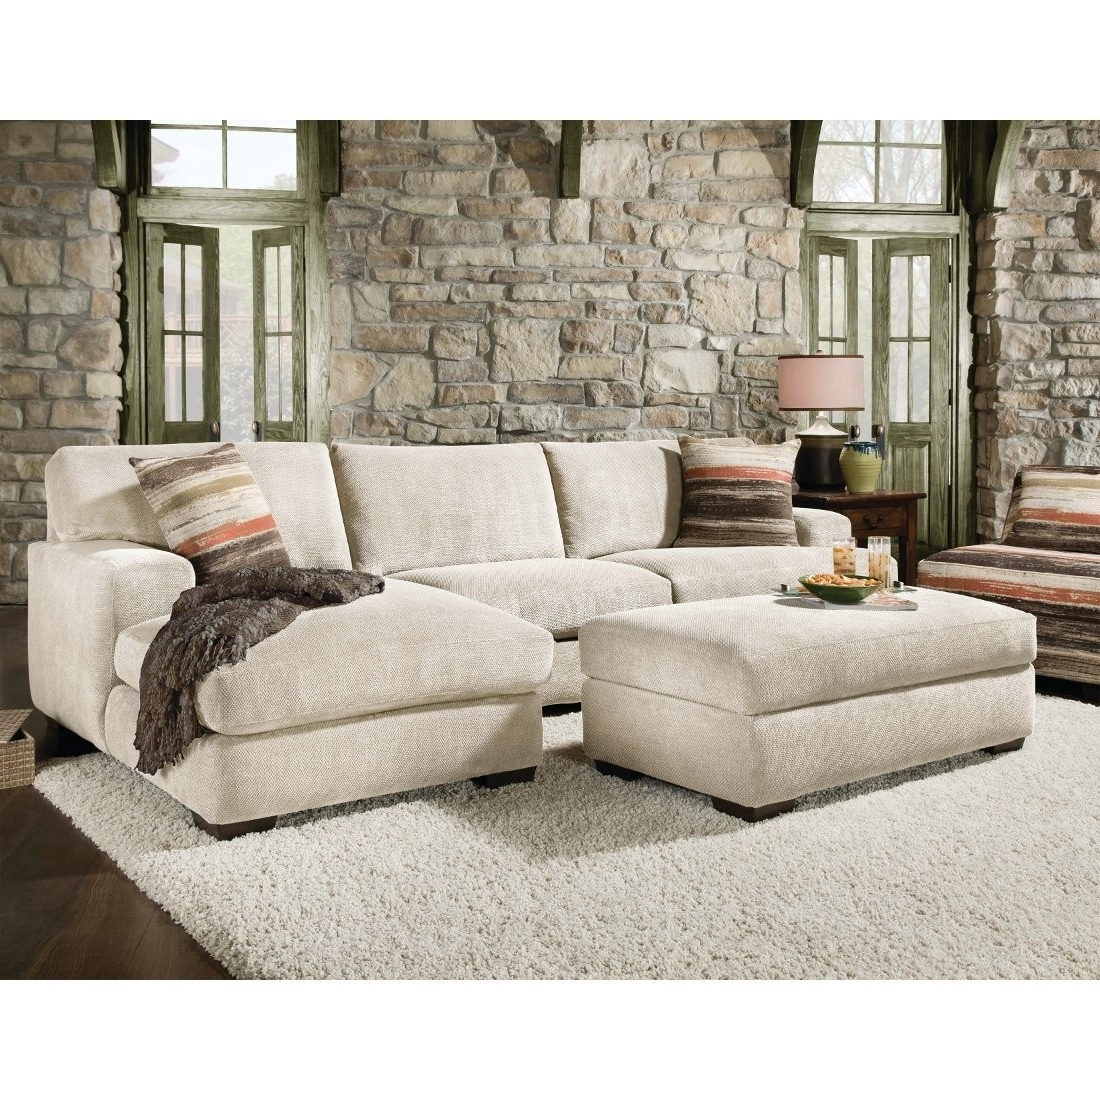 Conn's Pertaining To Trendy Chaise Lounge Sectional Sofas (View 13 of 15)